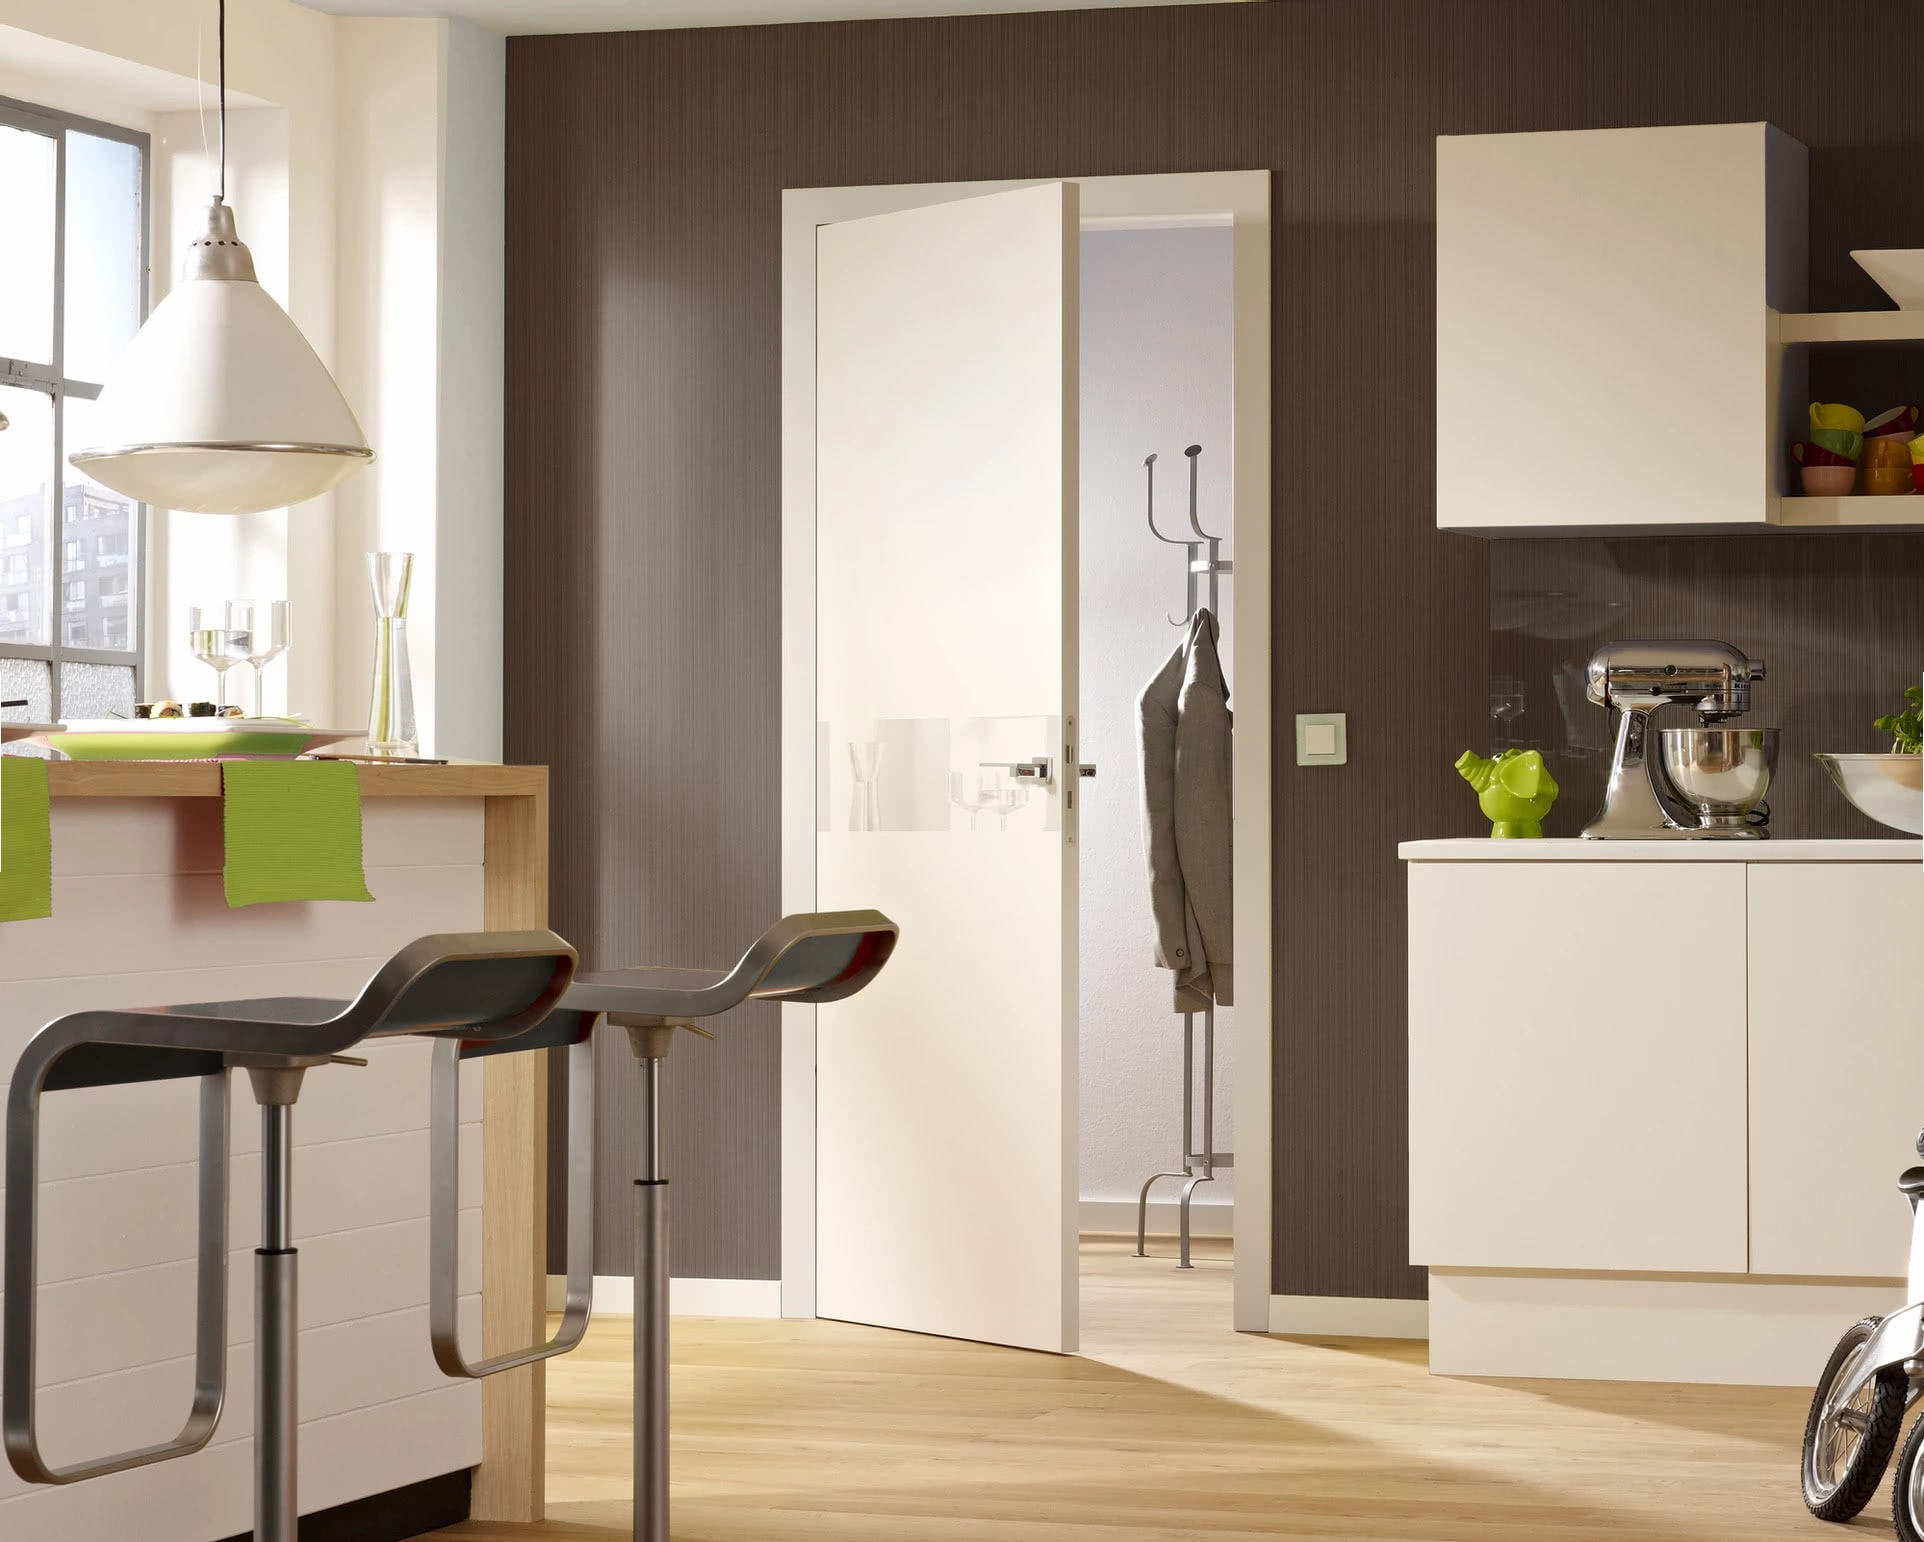 Modern Interior Door With An American Style Frame and Hidden Hinges